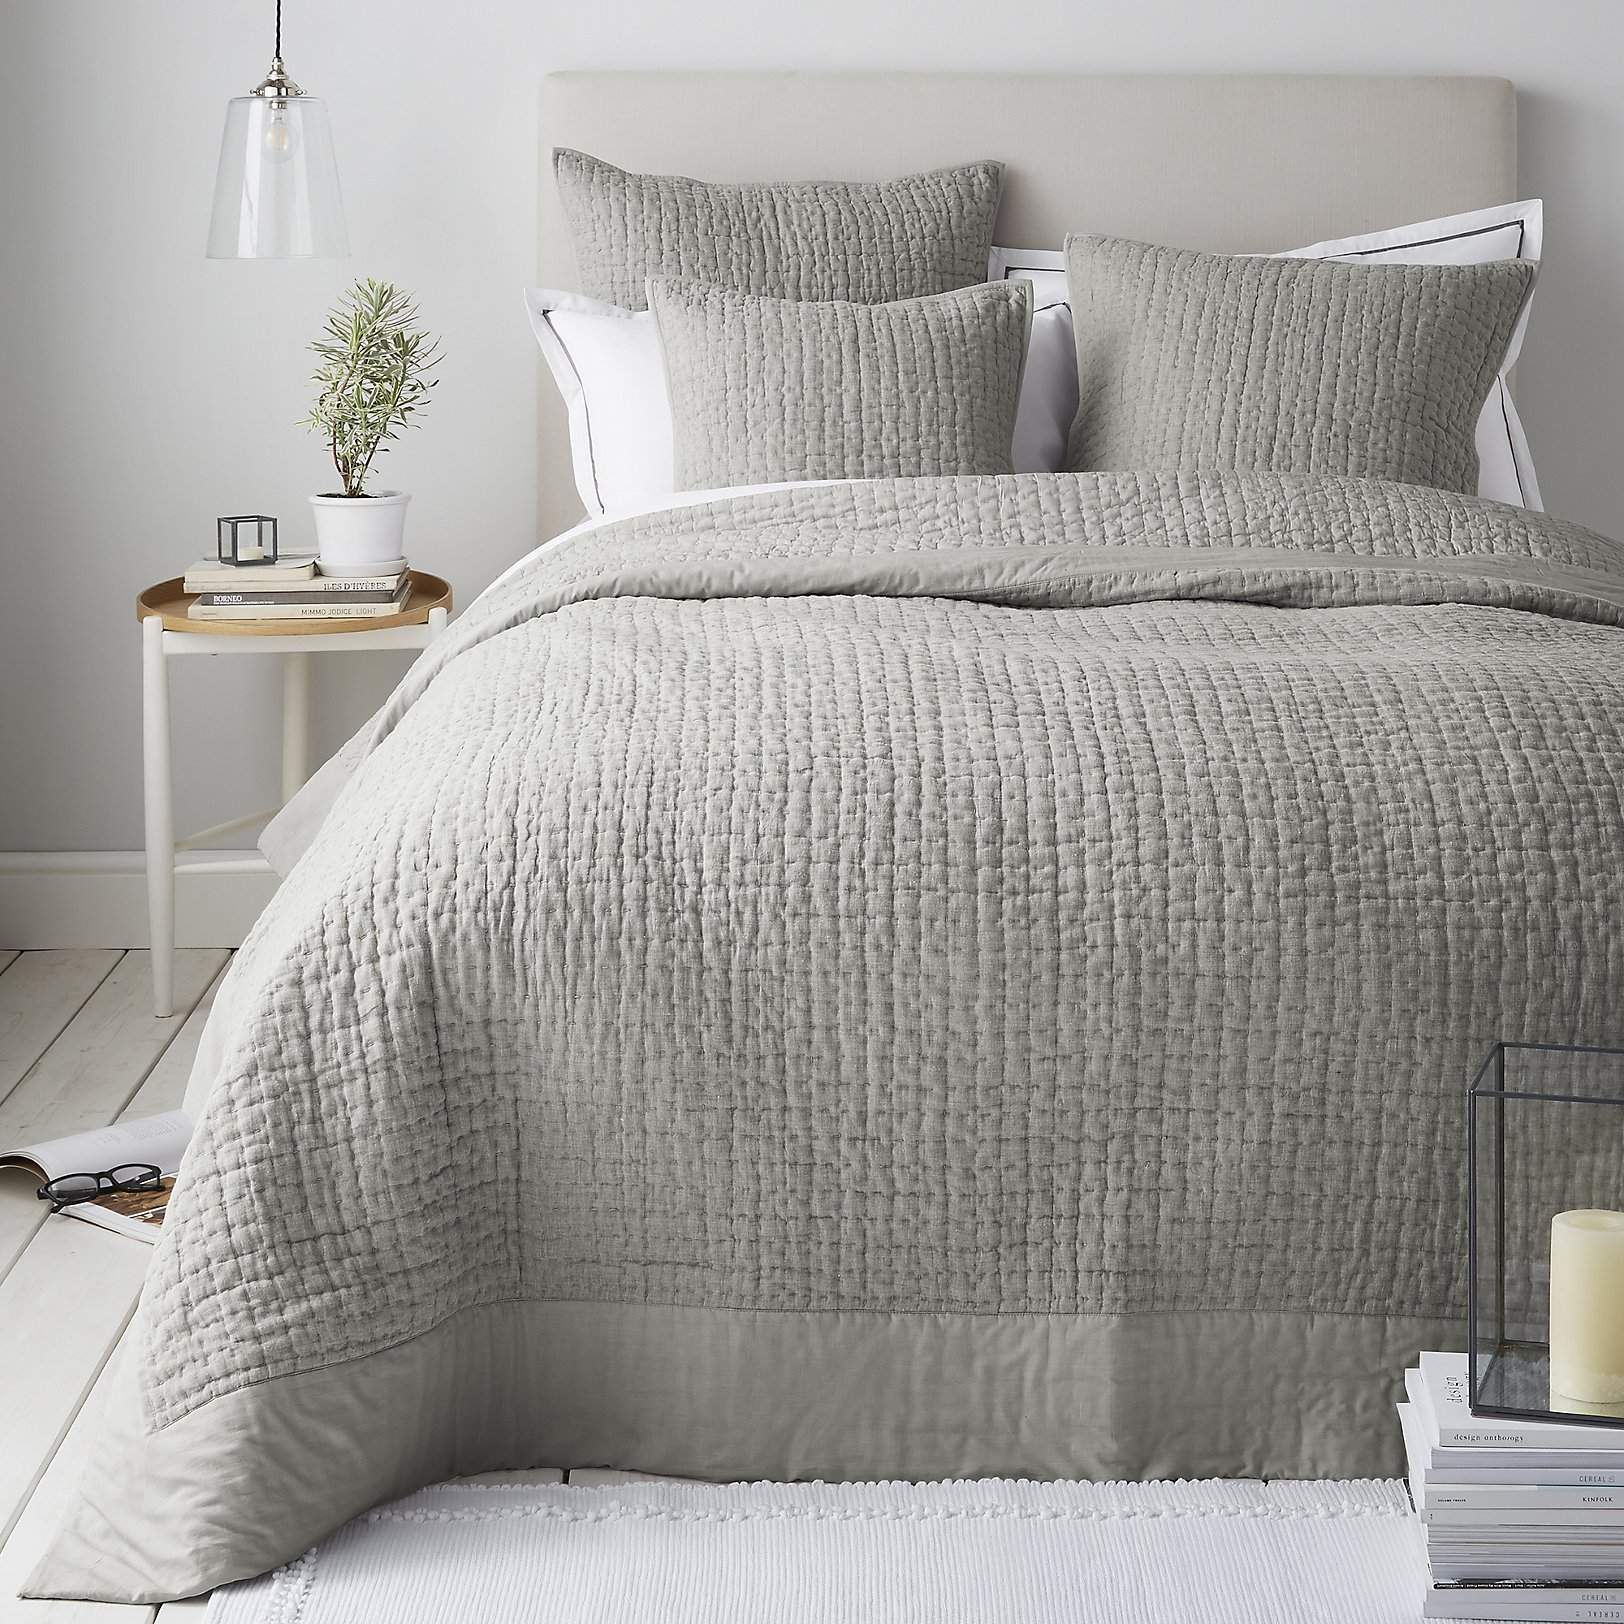 monmouth stripe bed linen collection  bedroom  sale  the white  -  shoreditch quilt  cushion covers  grey